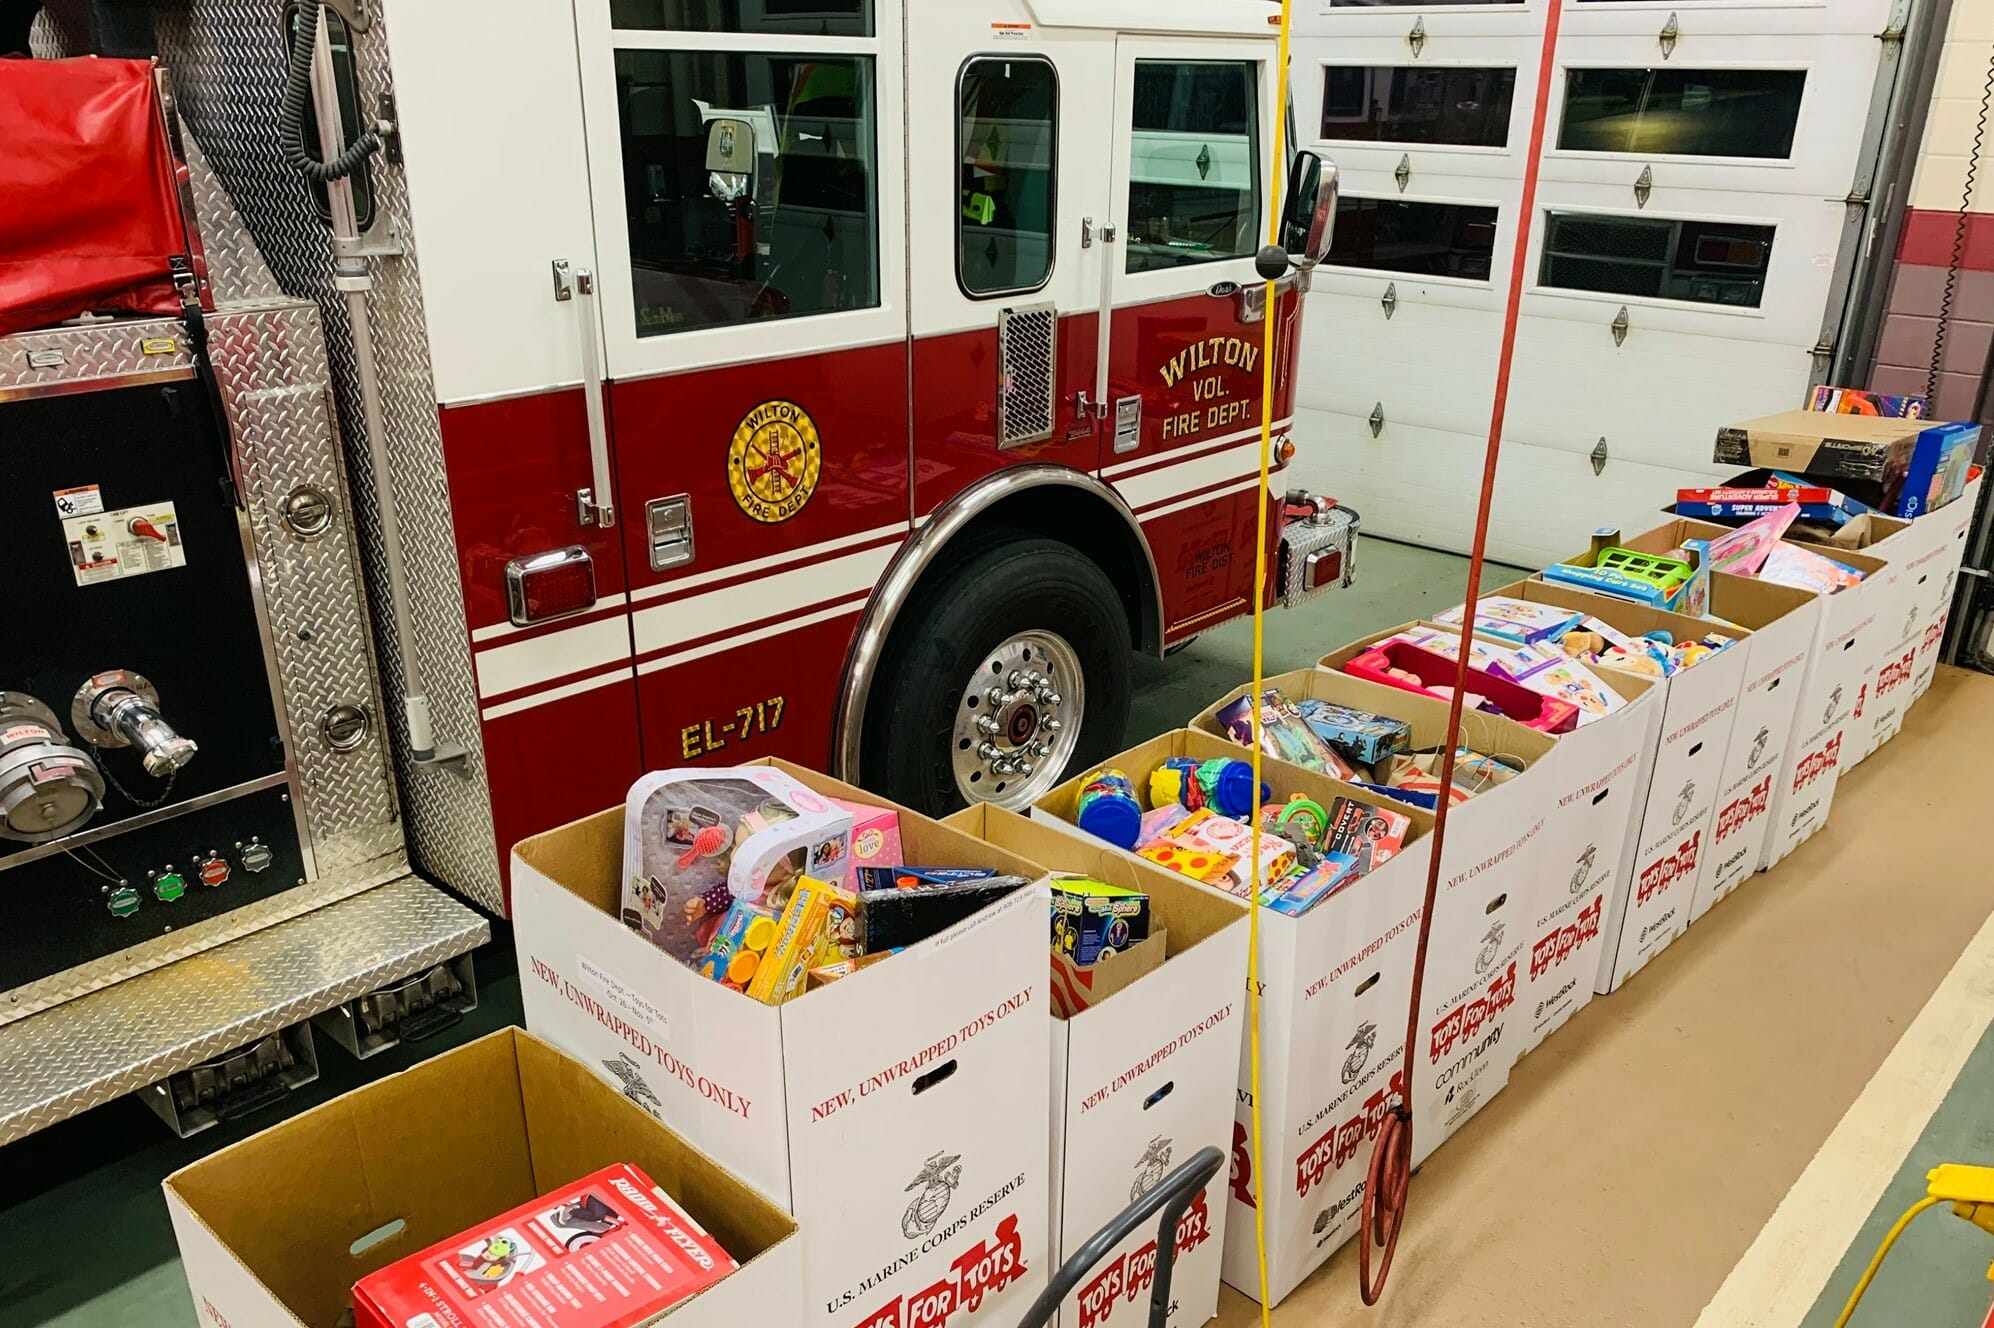 Toys for tots boxes in front of a firetruck.